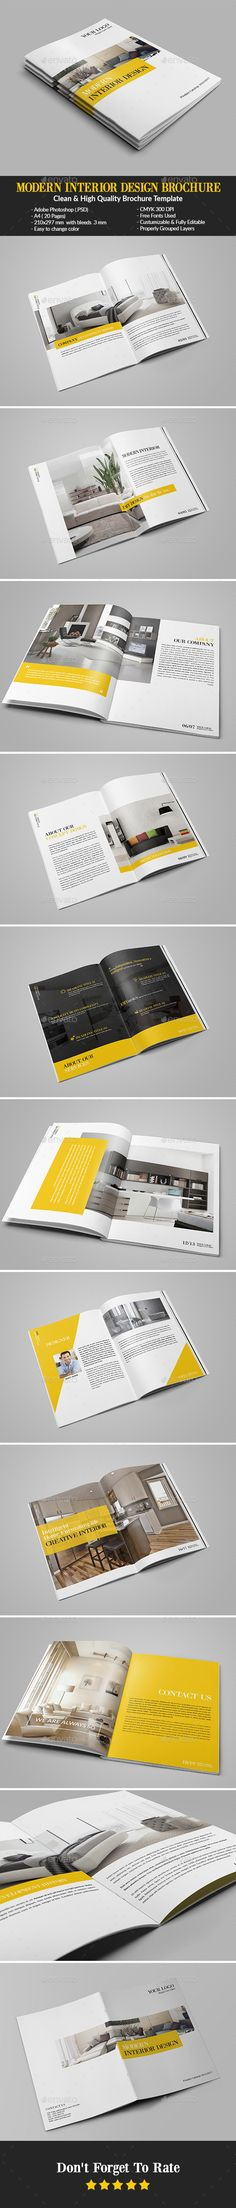 Clean Interior Design Brochure Print templates, Brochures and - interior design brochure template